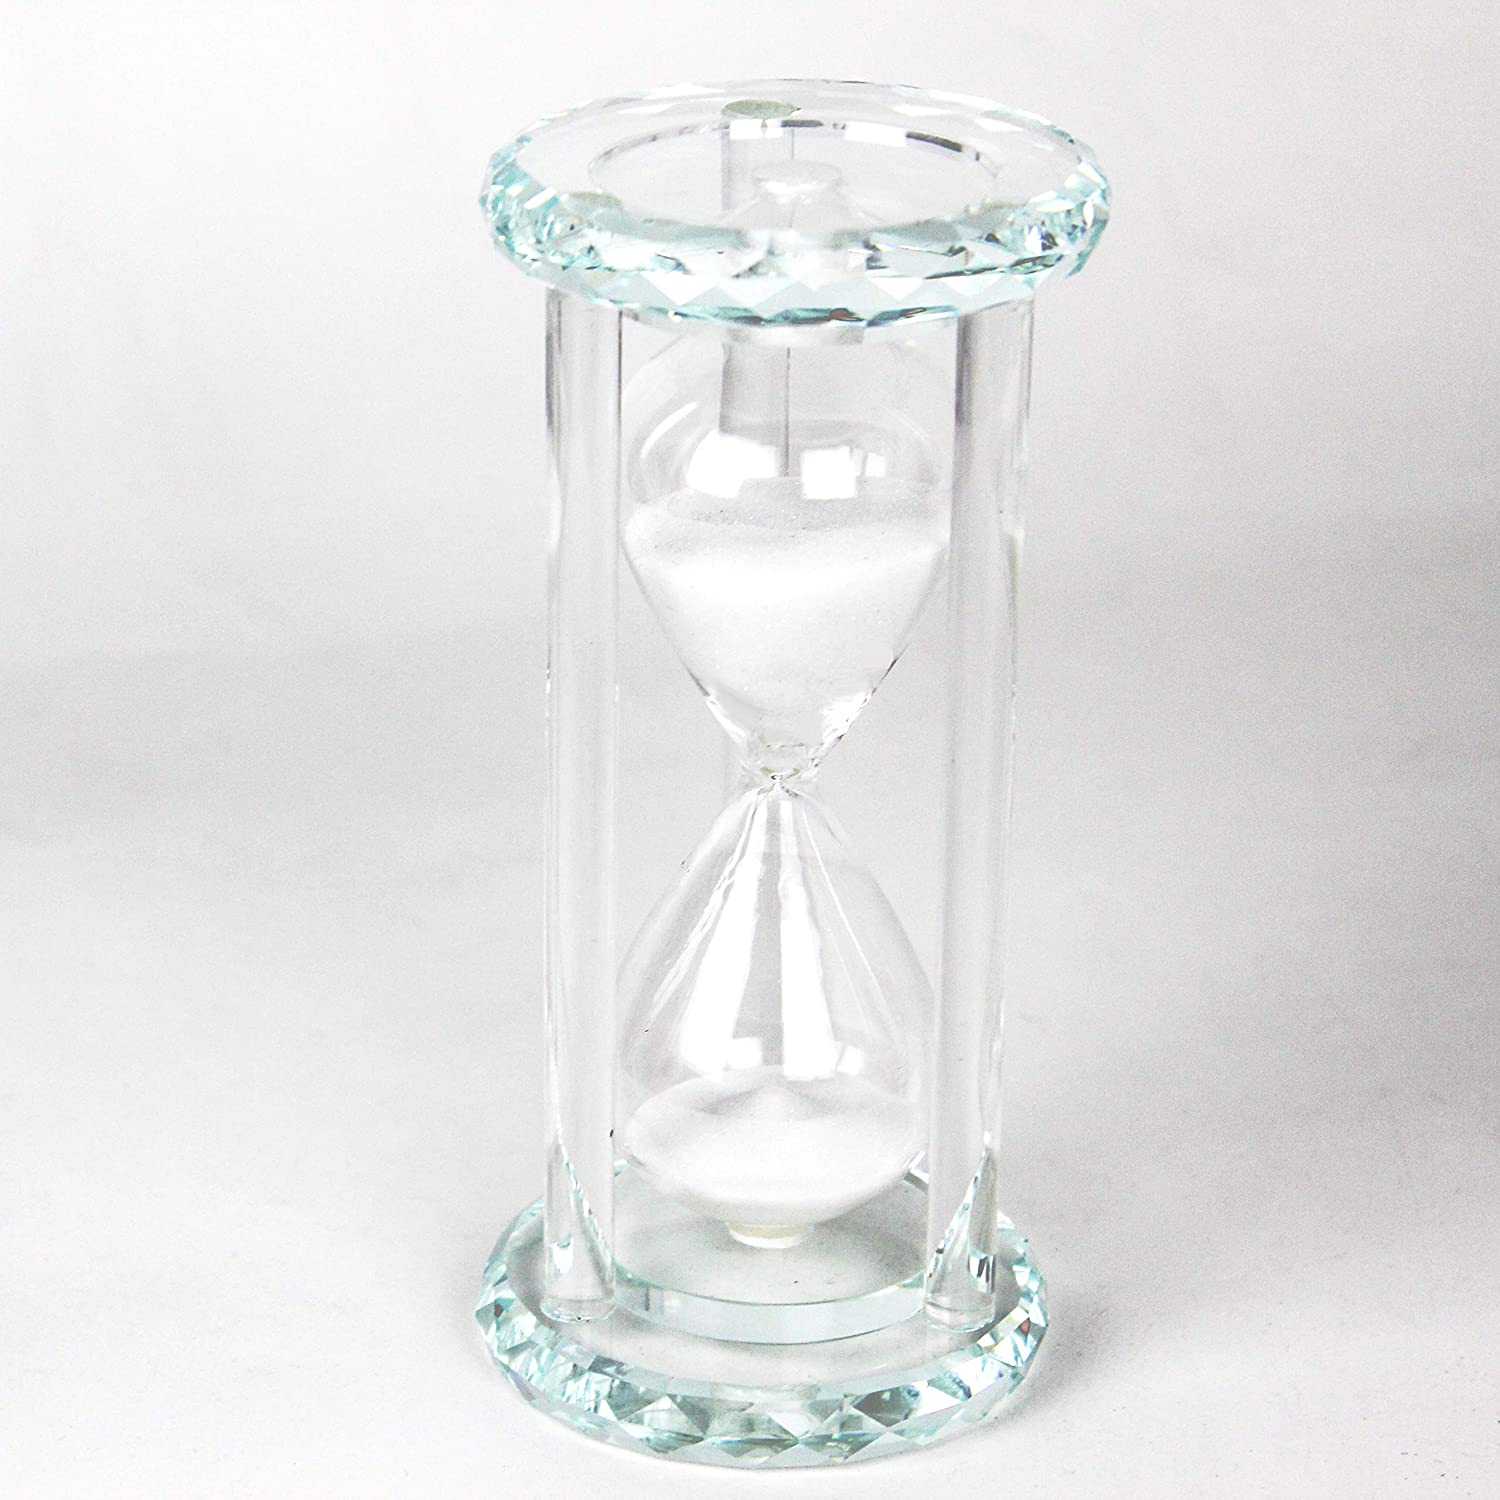 Lonovel 60 Minutes Hourglass Timer,Crystal Sand Timer Diamond Carving Surface,Hourglass for Kitchen Office Desk Coffee Table Book Shelf Cabinet Home Decor Birthday Gift Box Package,2 Color(Pure White)